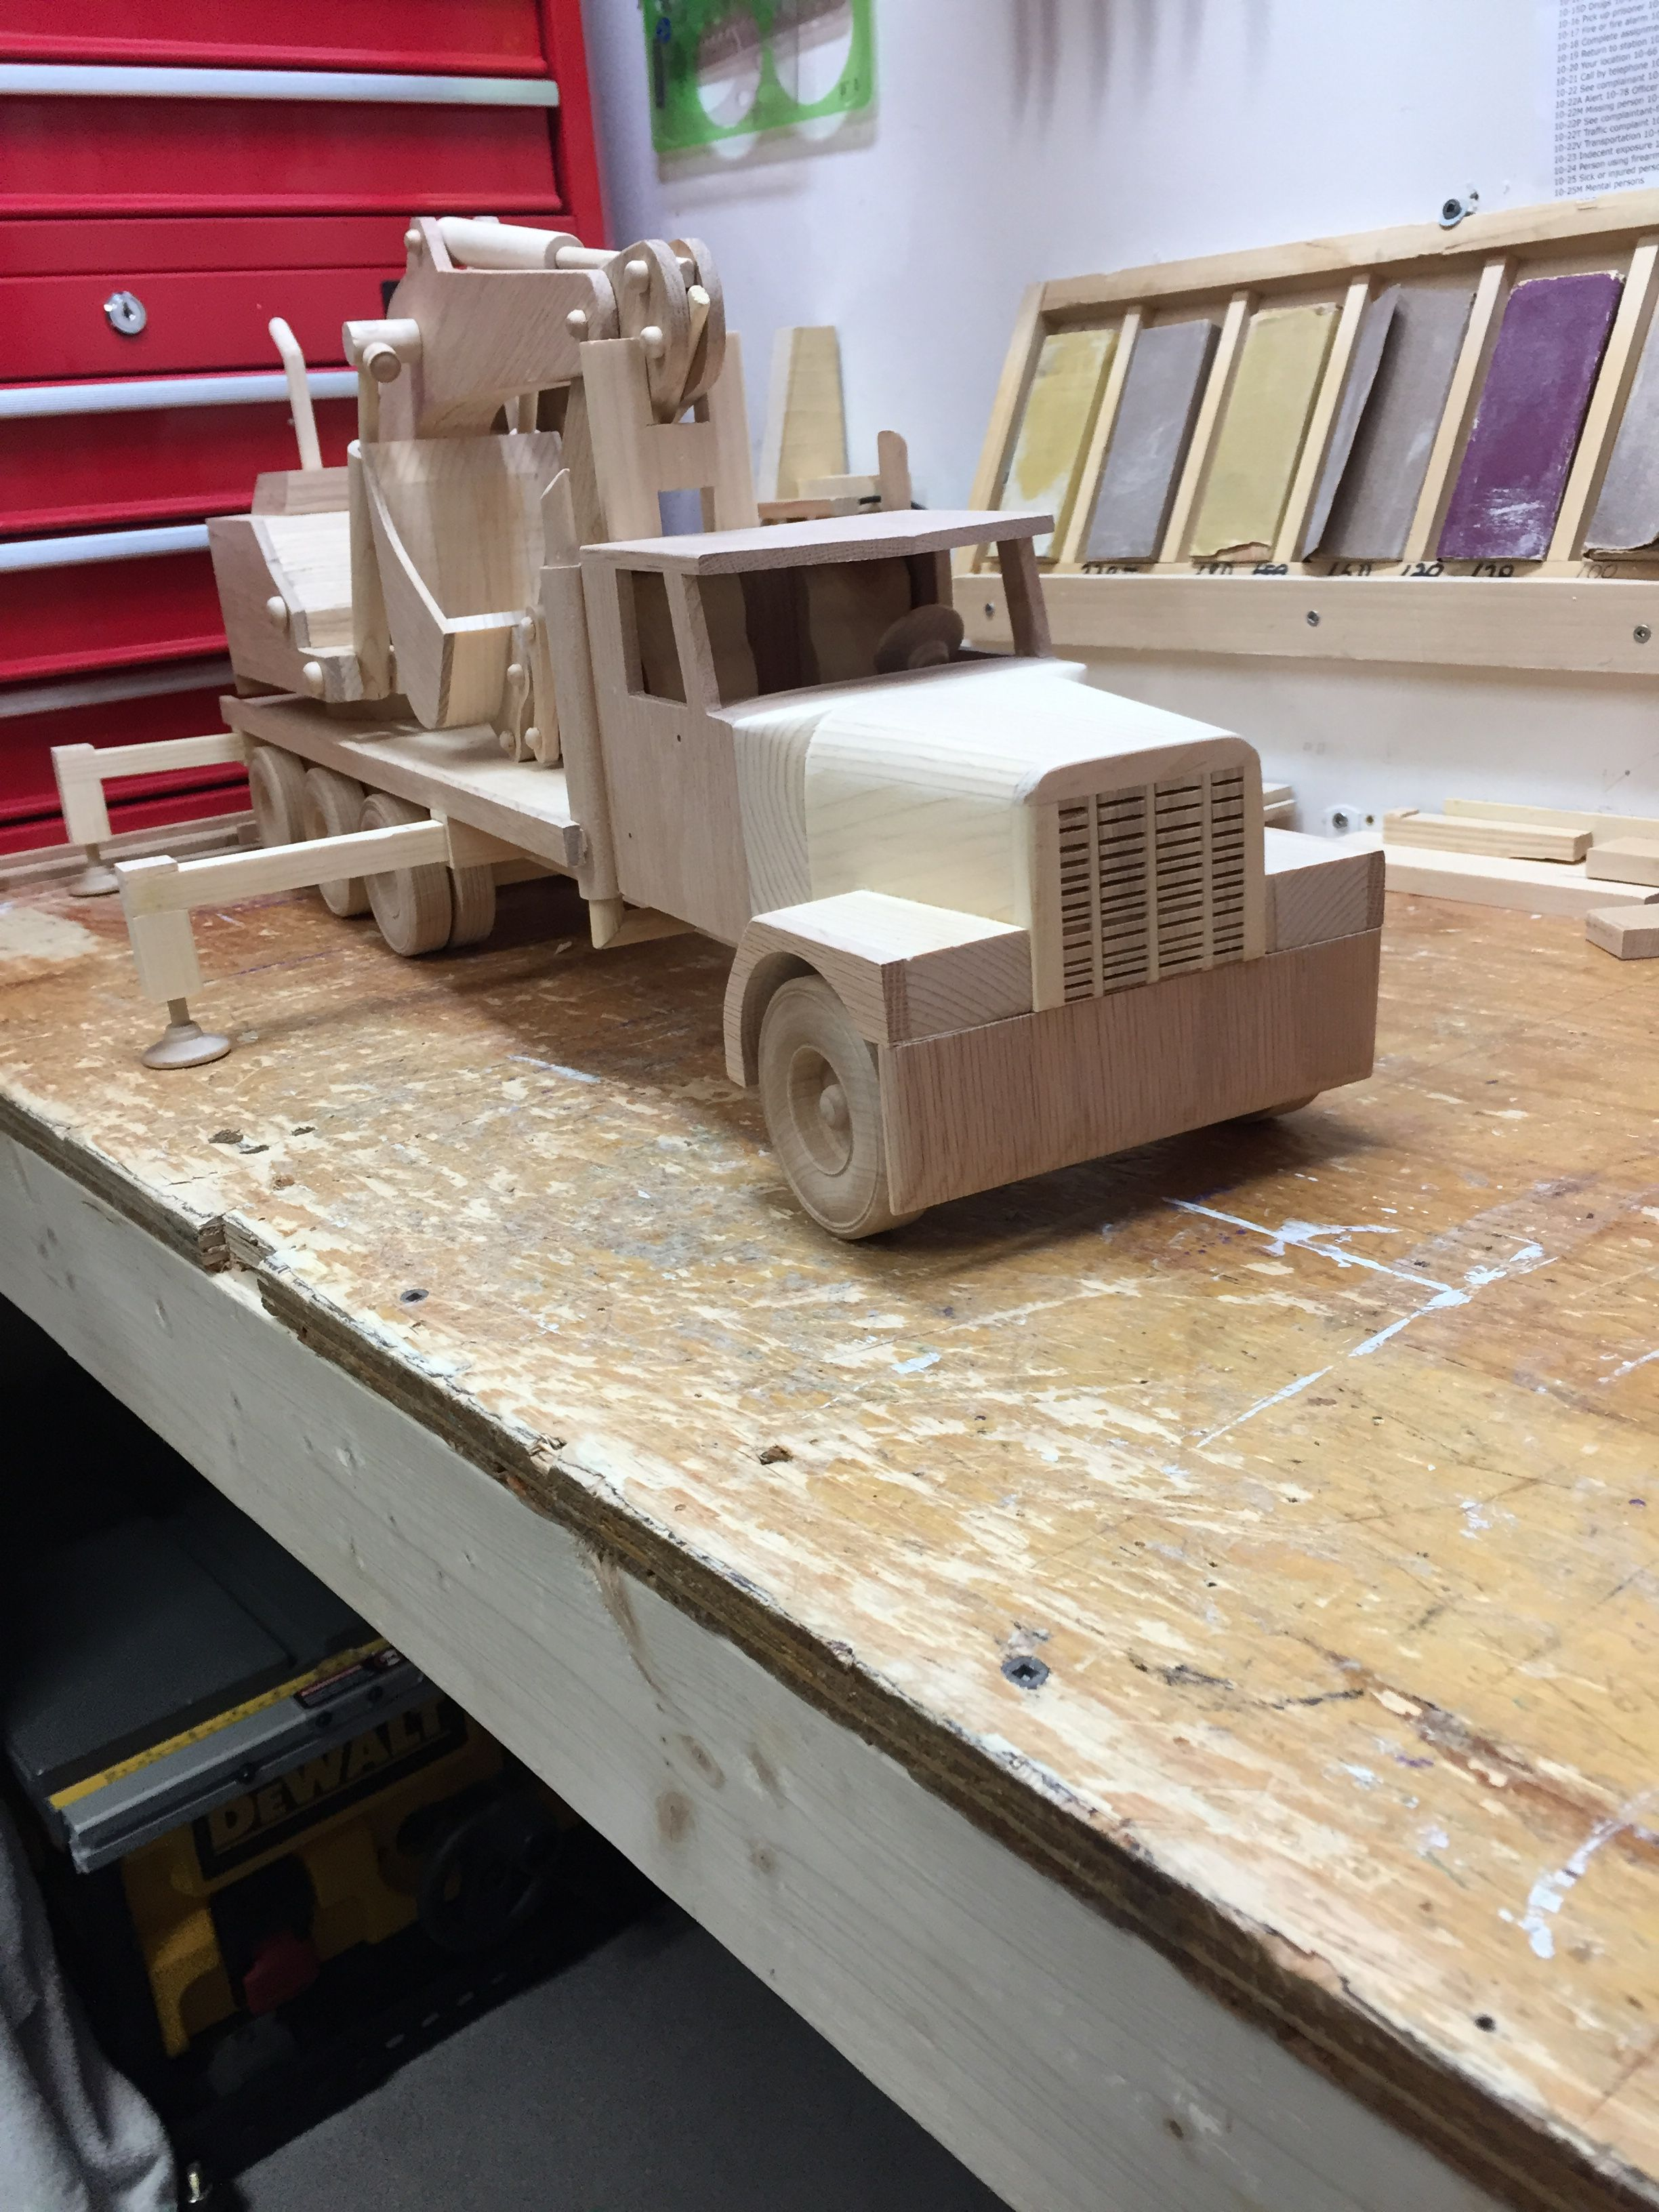 pinjohn molloy on wooden truck plans | wooden toys, wood